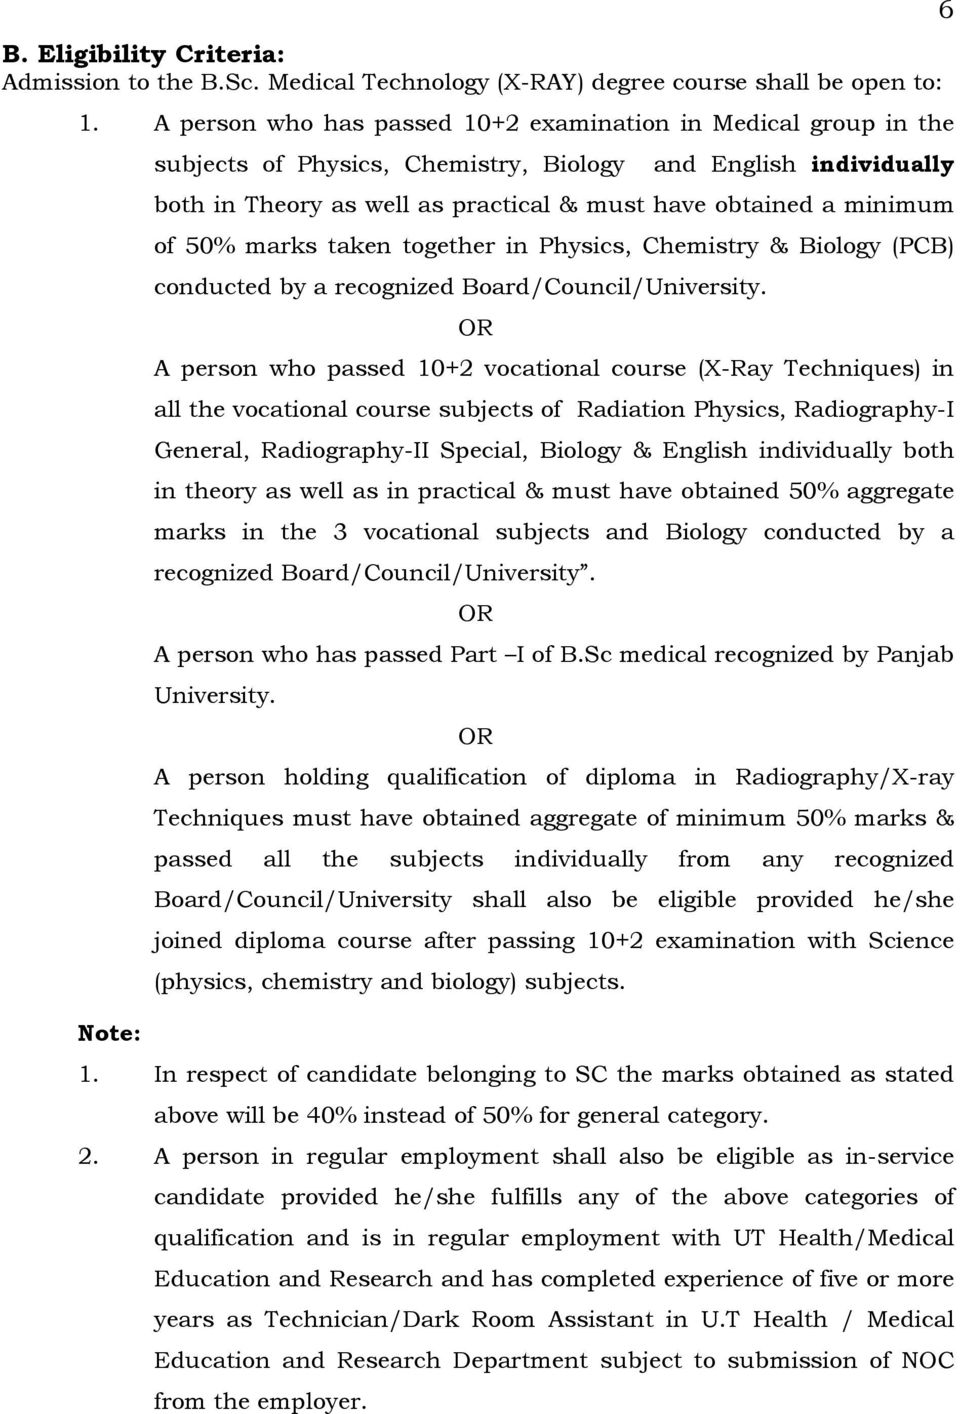 50% marks taken together in Physics, Chemistry & Biology (PCB) conducted by a recognized Board/Council/University.